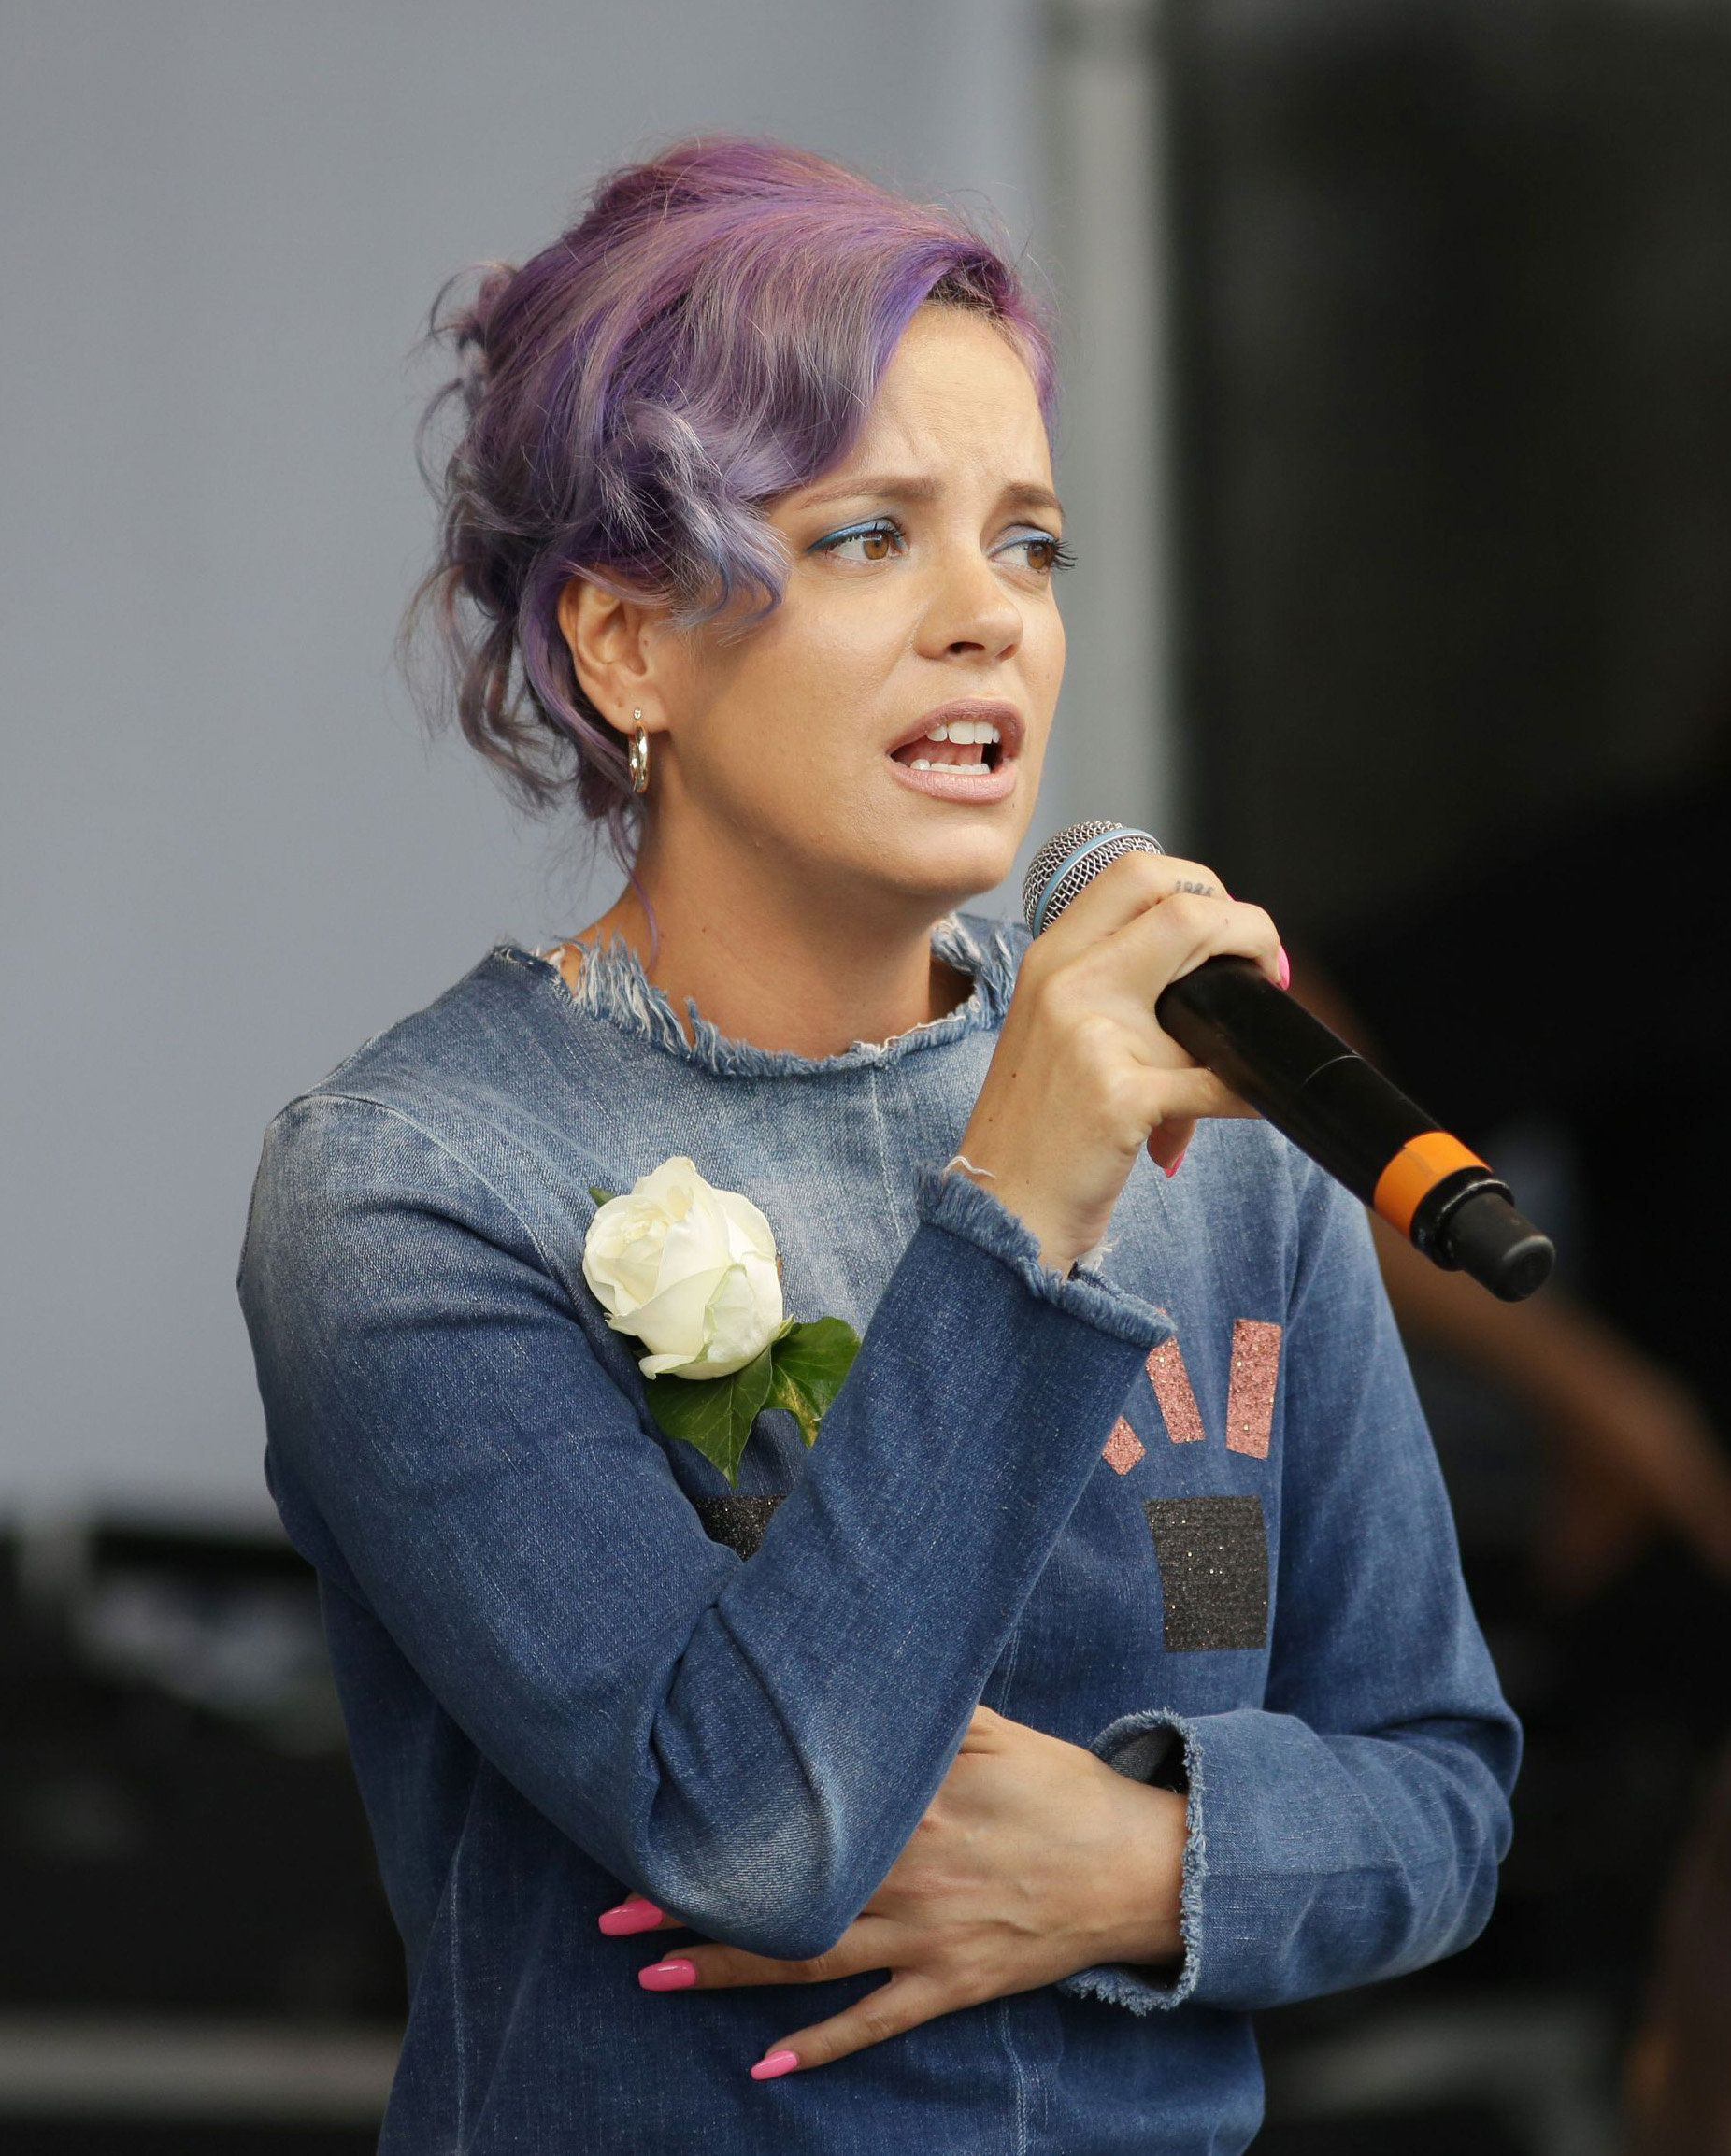 Lily Allen: I blamed myself for being victim of sex attack